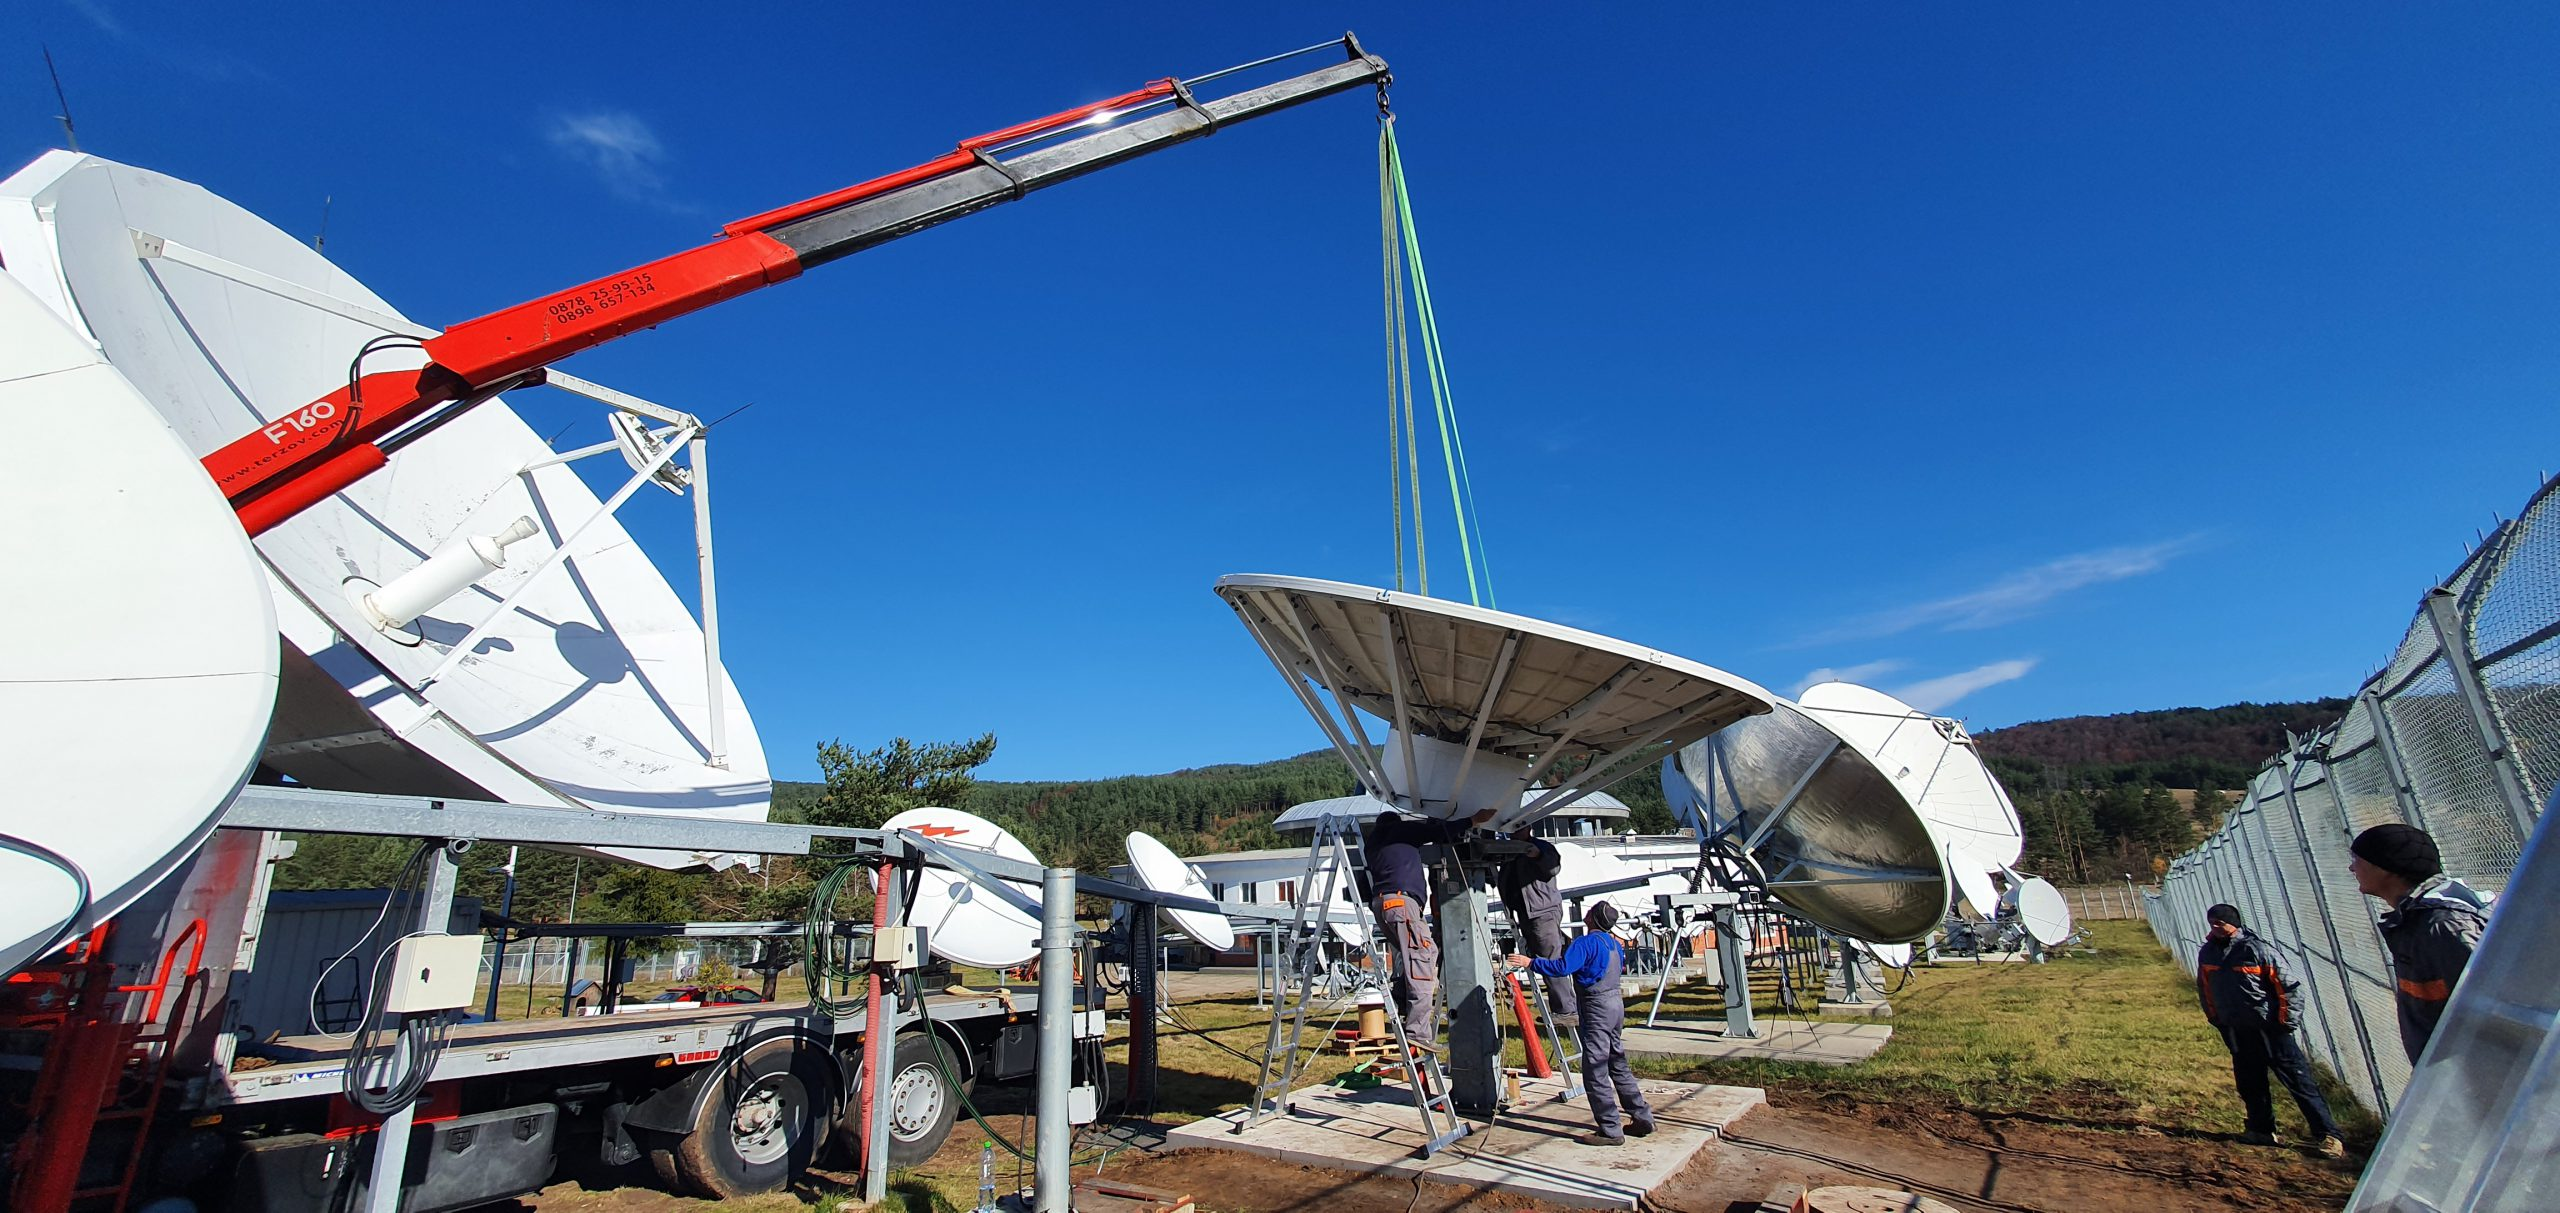 Andrew 4.6m antenna refurbished and installed at Plana Teleport in Bulgaria.